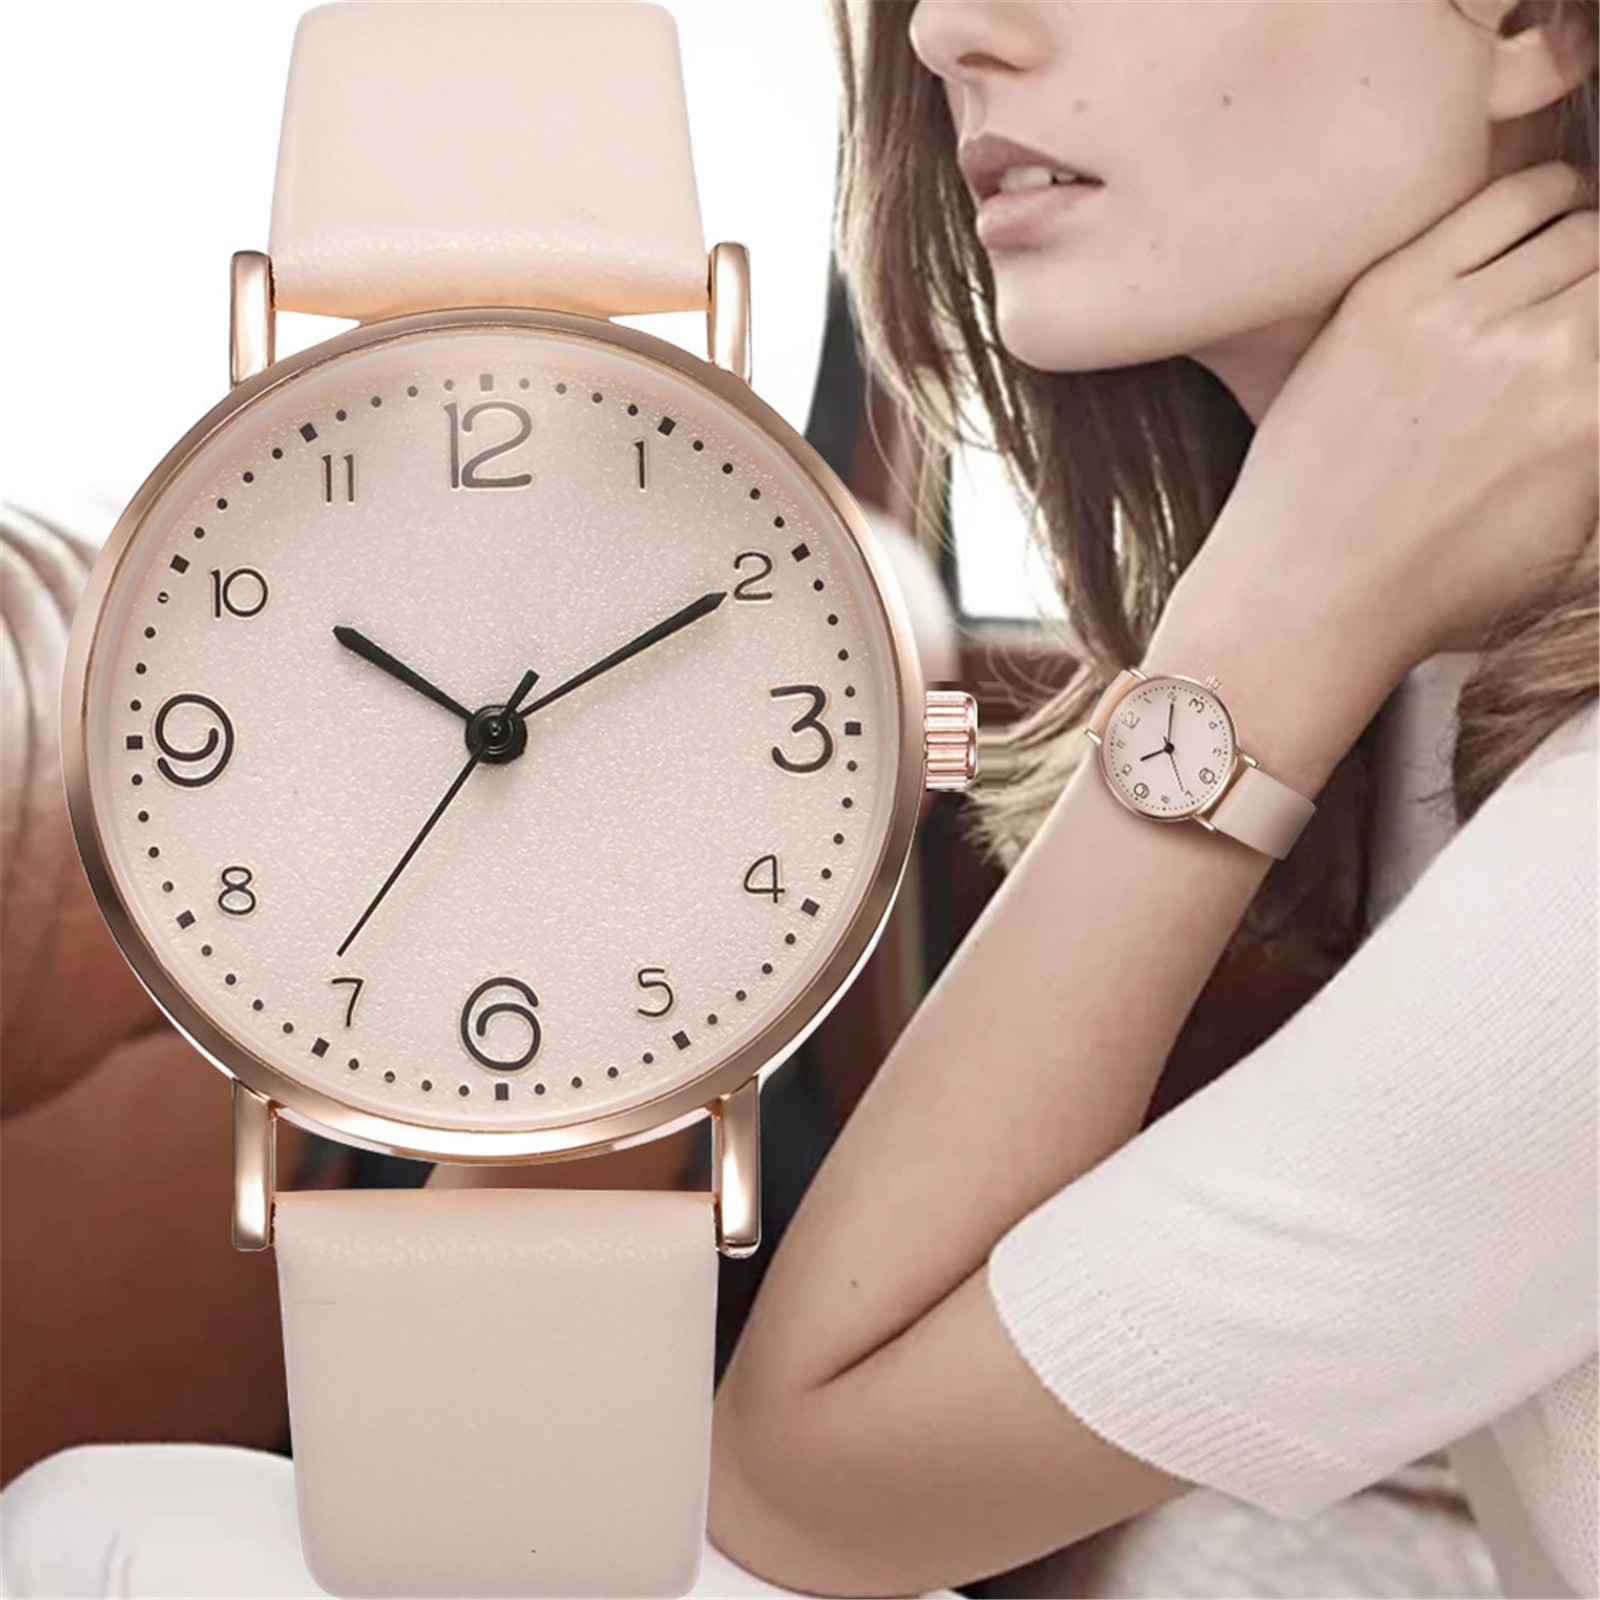 New Women Luxury Quartz Alloy Watch Ladies Fashion Stainless Steel Dial Casual Bracele Watch Leather